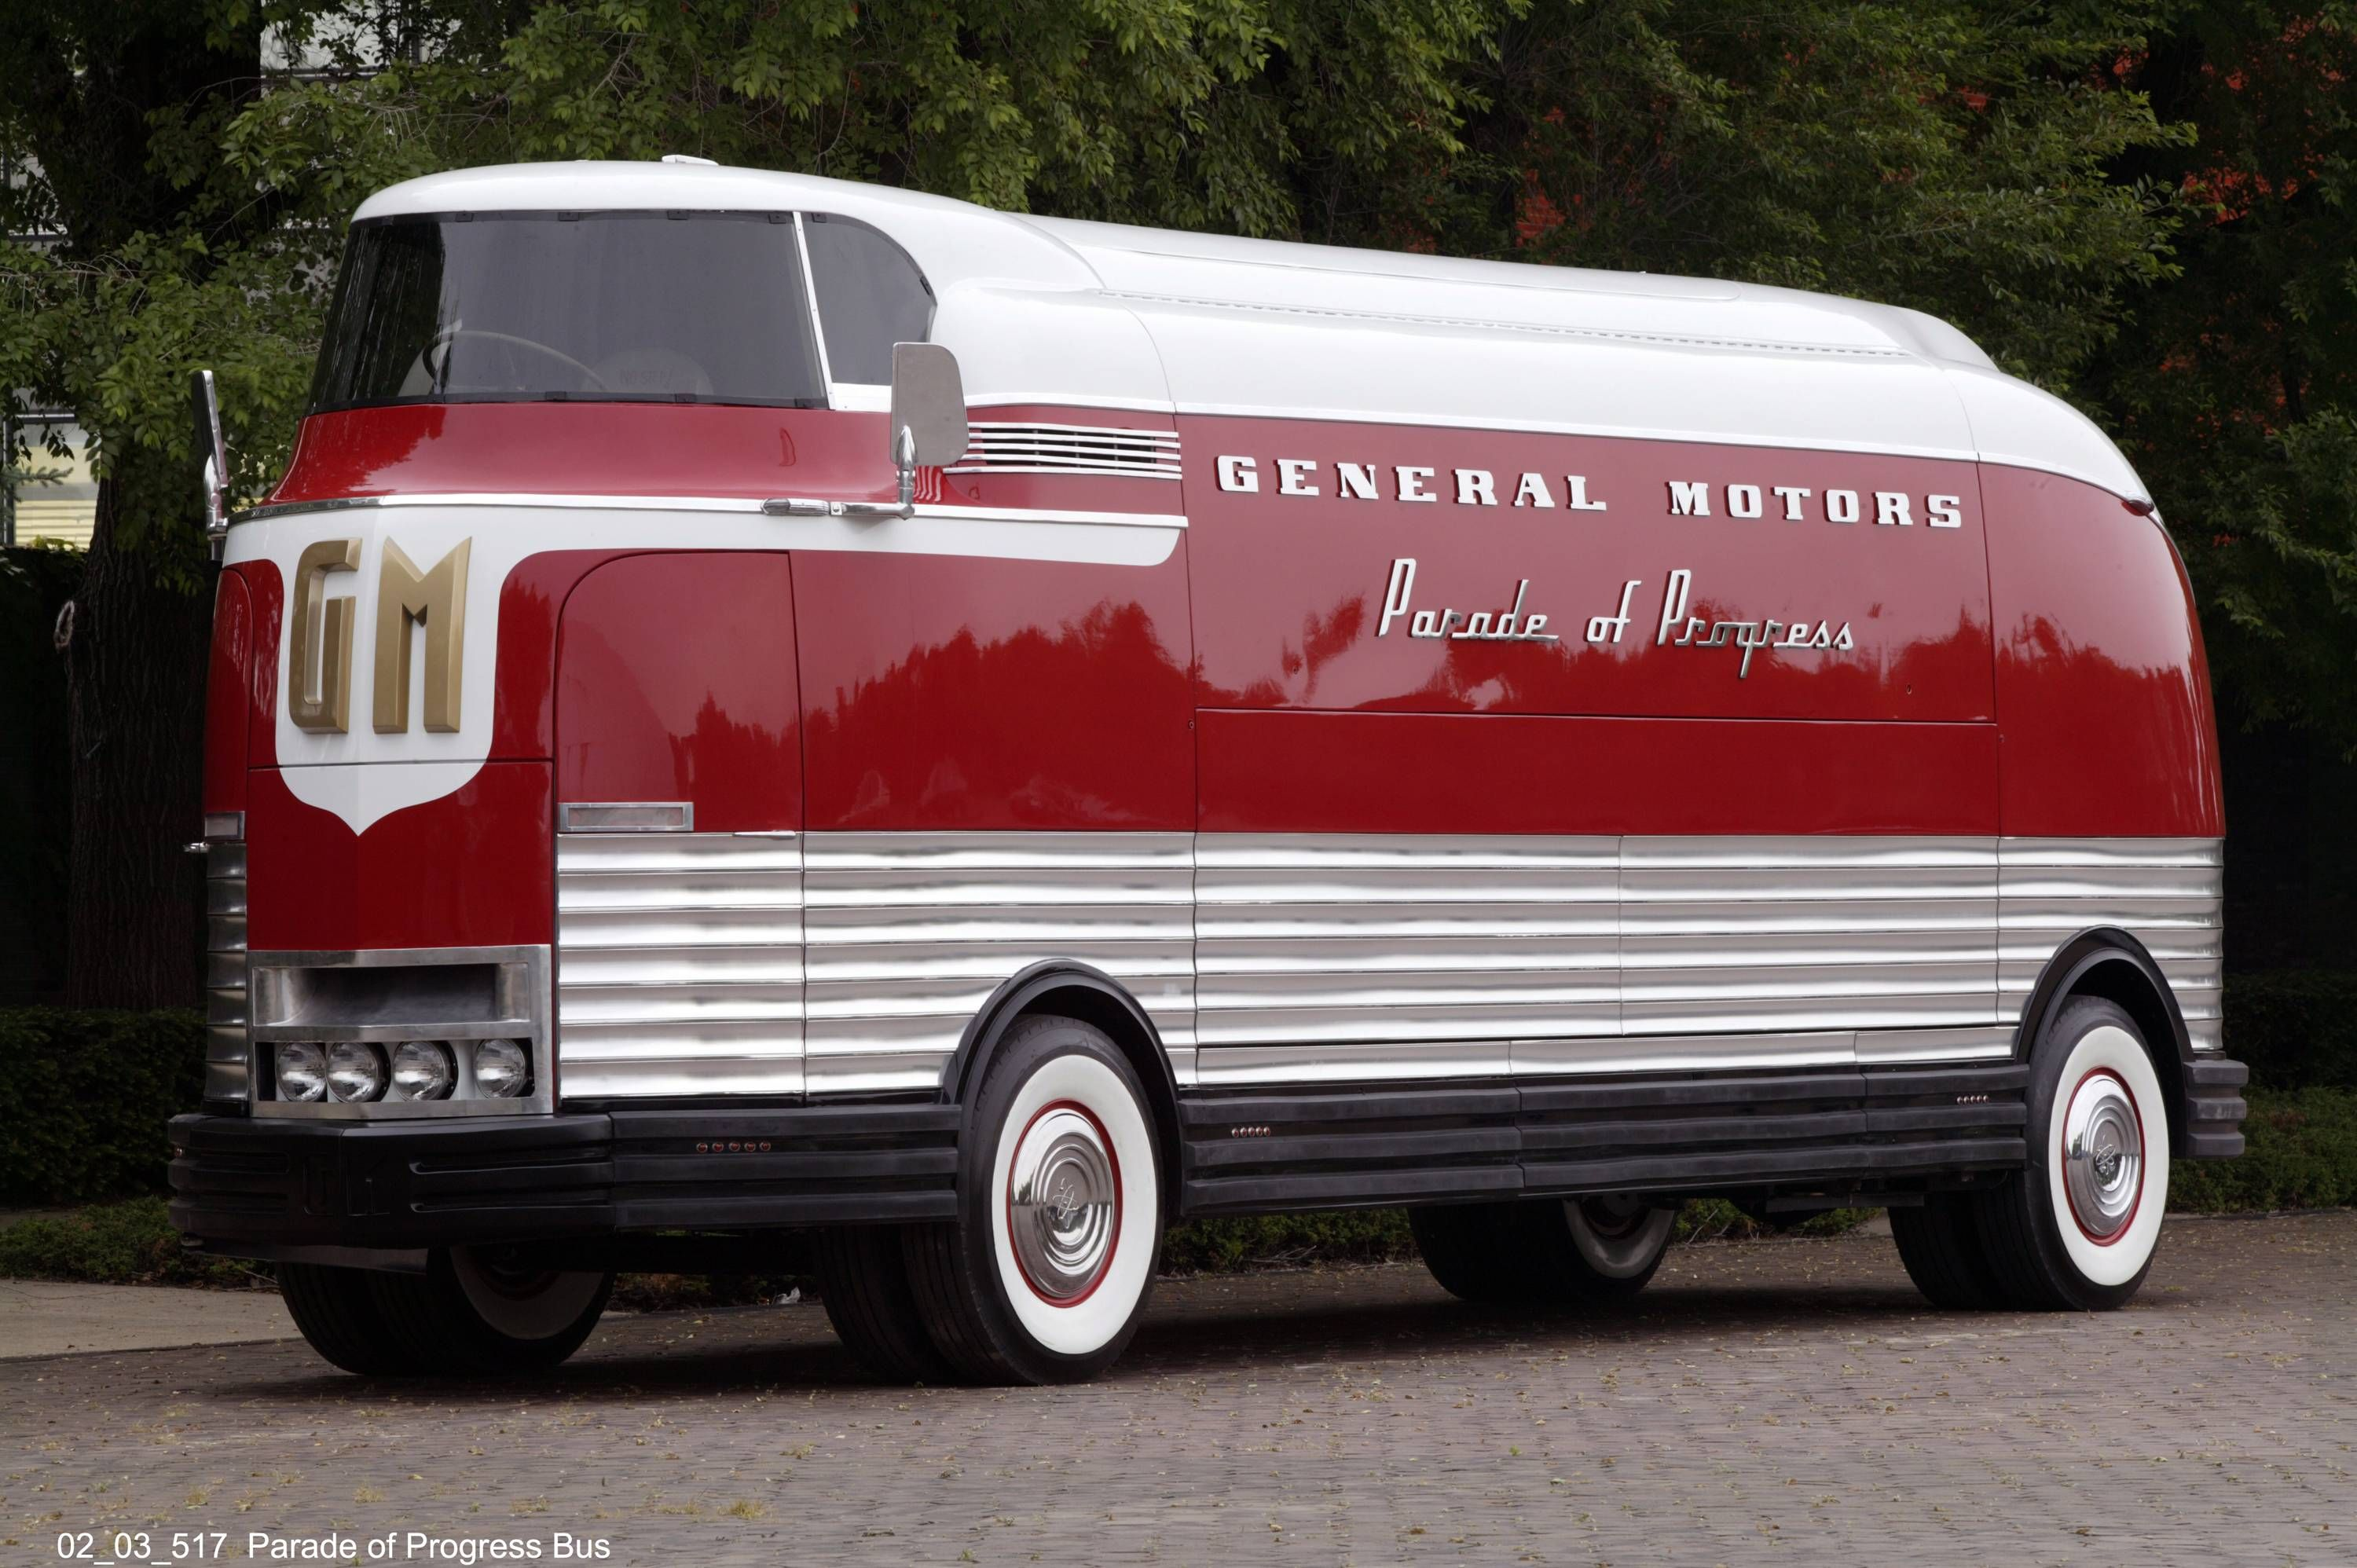 15 ton bus GM made in the 1940's that looks futuristic for